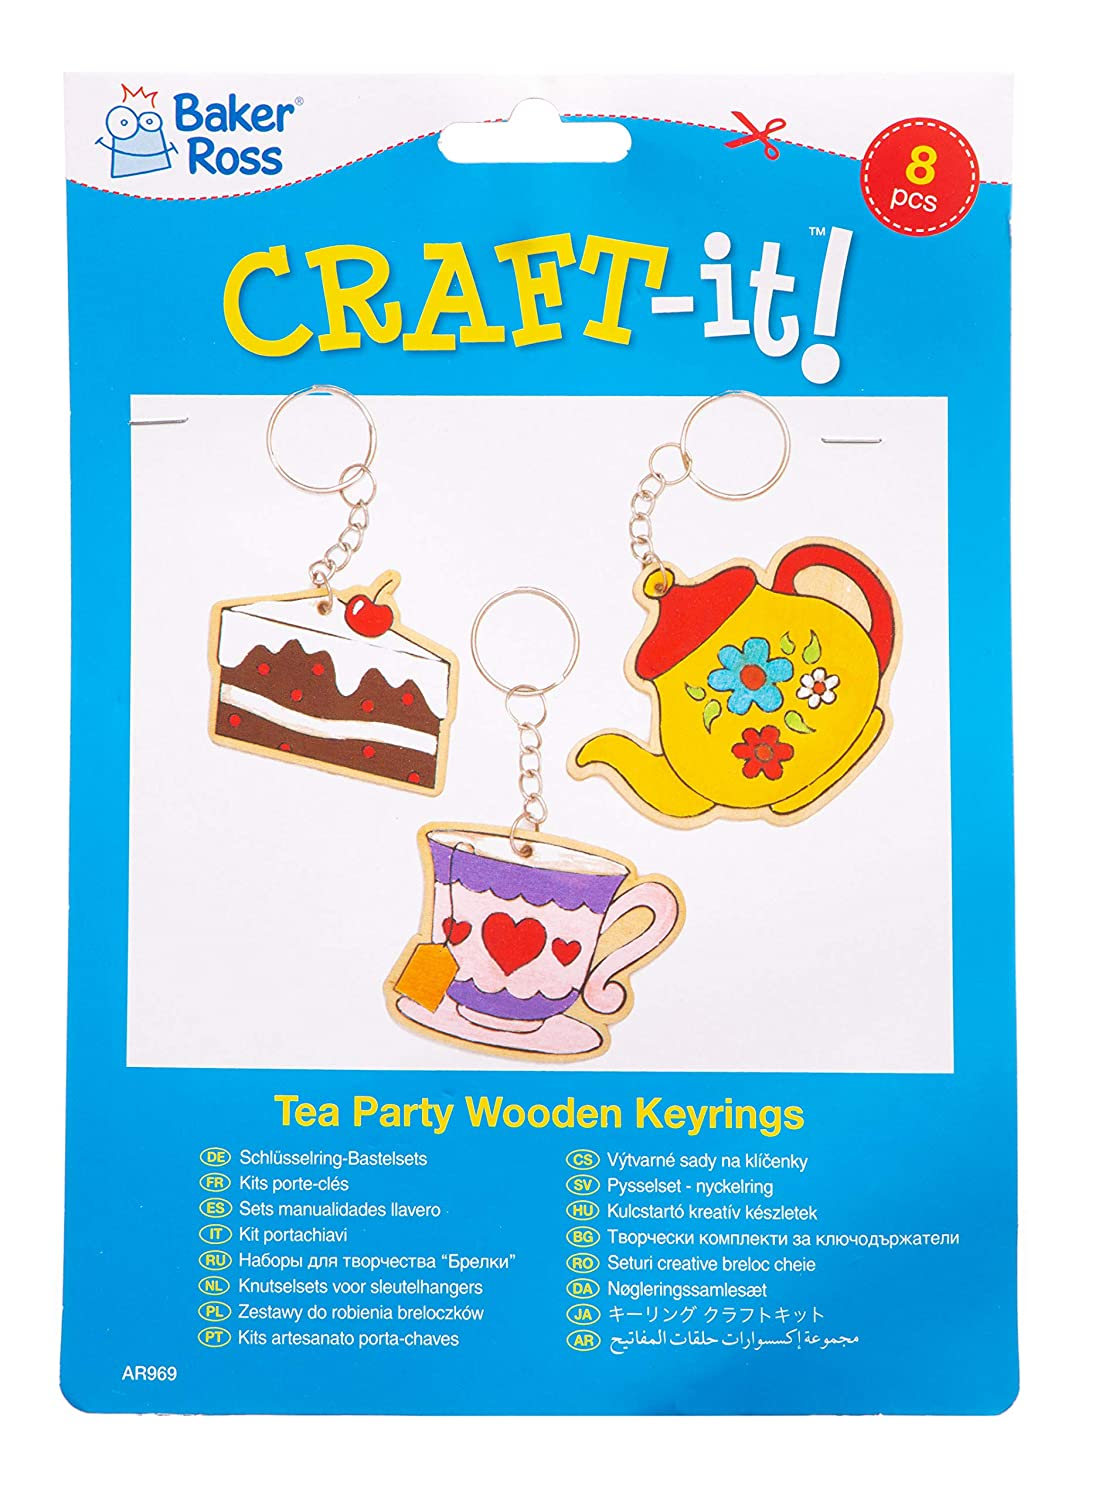 Amazon.com: Baker Ross Tea Party Wooden Keyrings (Pack of 8 ...